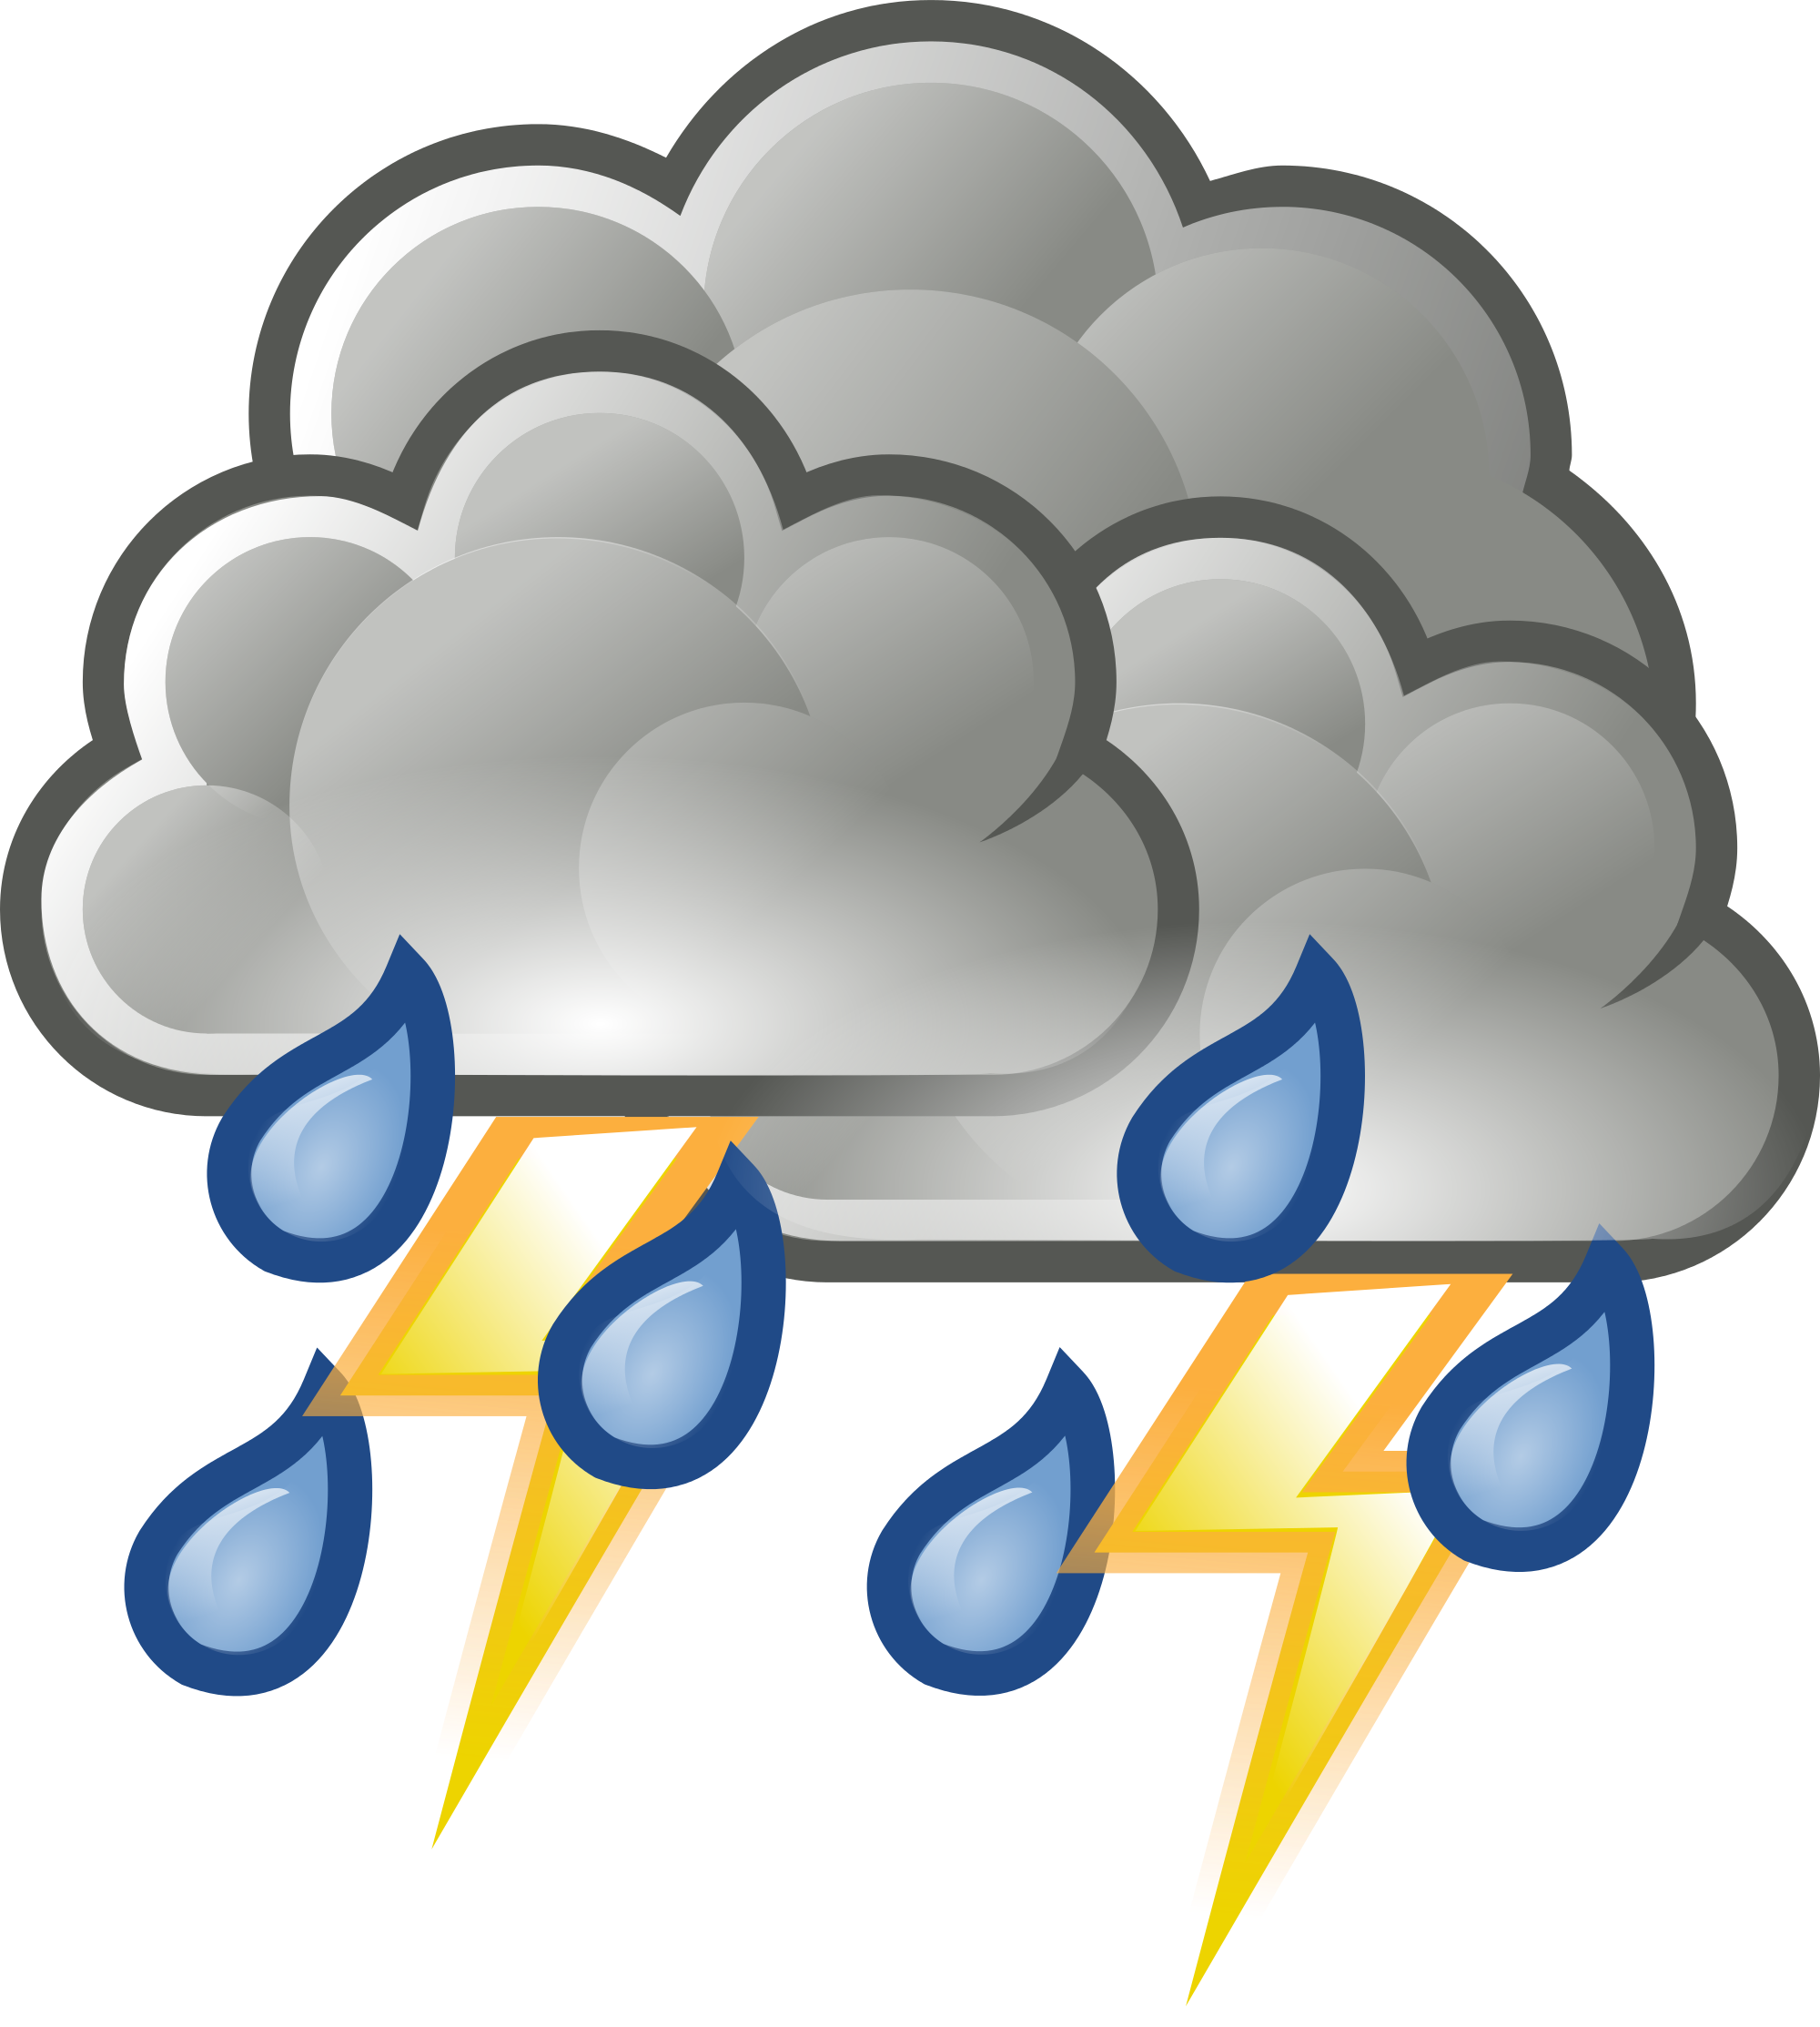 Thunder Storm clipart #20, Download drawings